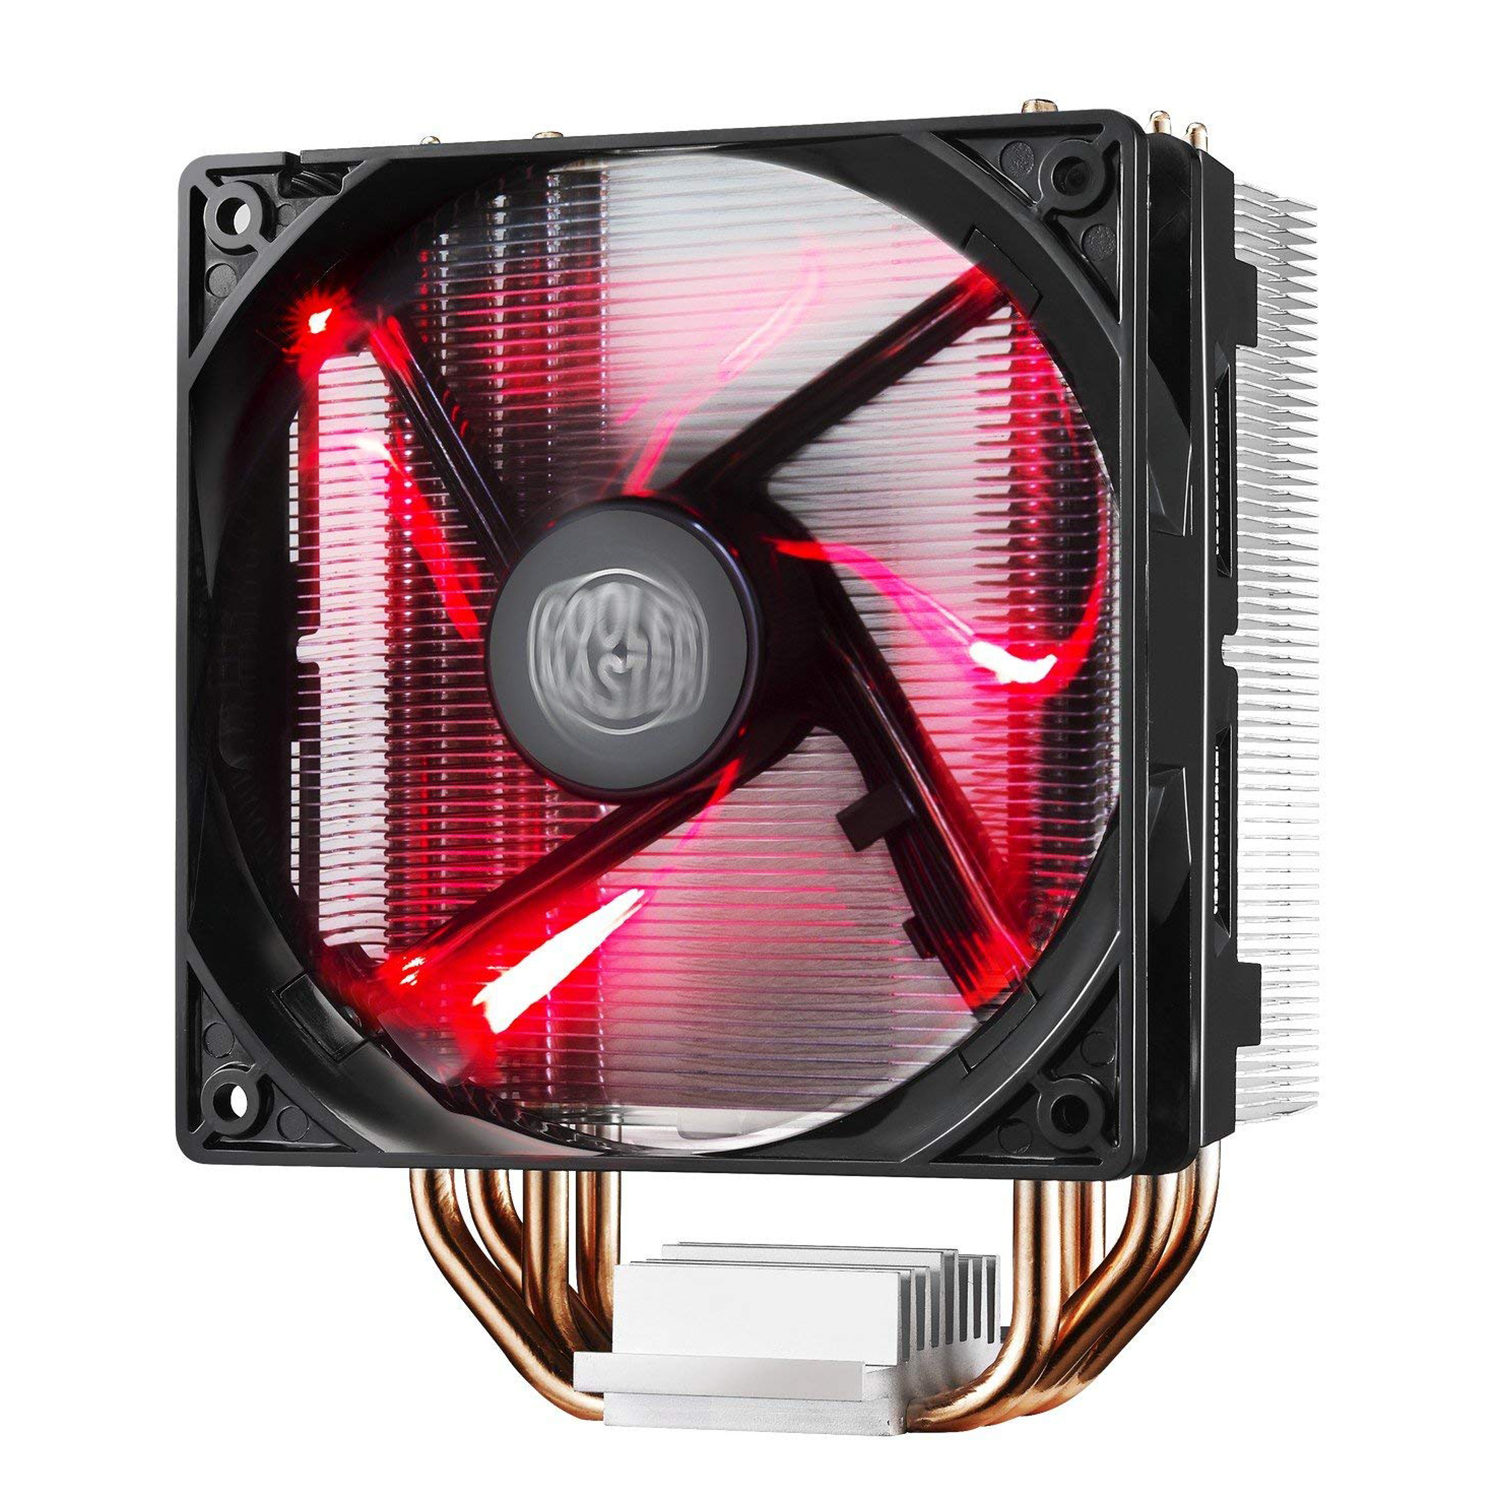 COOLER MASTER RR-212L-16PR-R1 Hyper 212 LED CPU Cooler with PWM Fan, Four Direct Contact Heat Pipes, Unique Blade Design and RCOOLER MASTER RR-212L-16PR-R1 Hyper 212 LED CPU Cooler with PWM Fan, Four Direct Contact Heat Pipes, Unique Blade Design and R